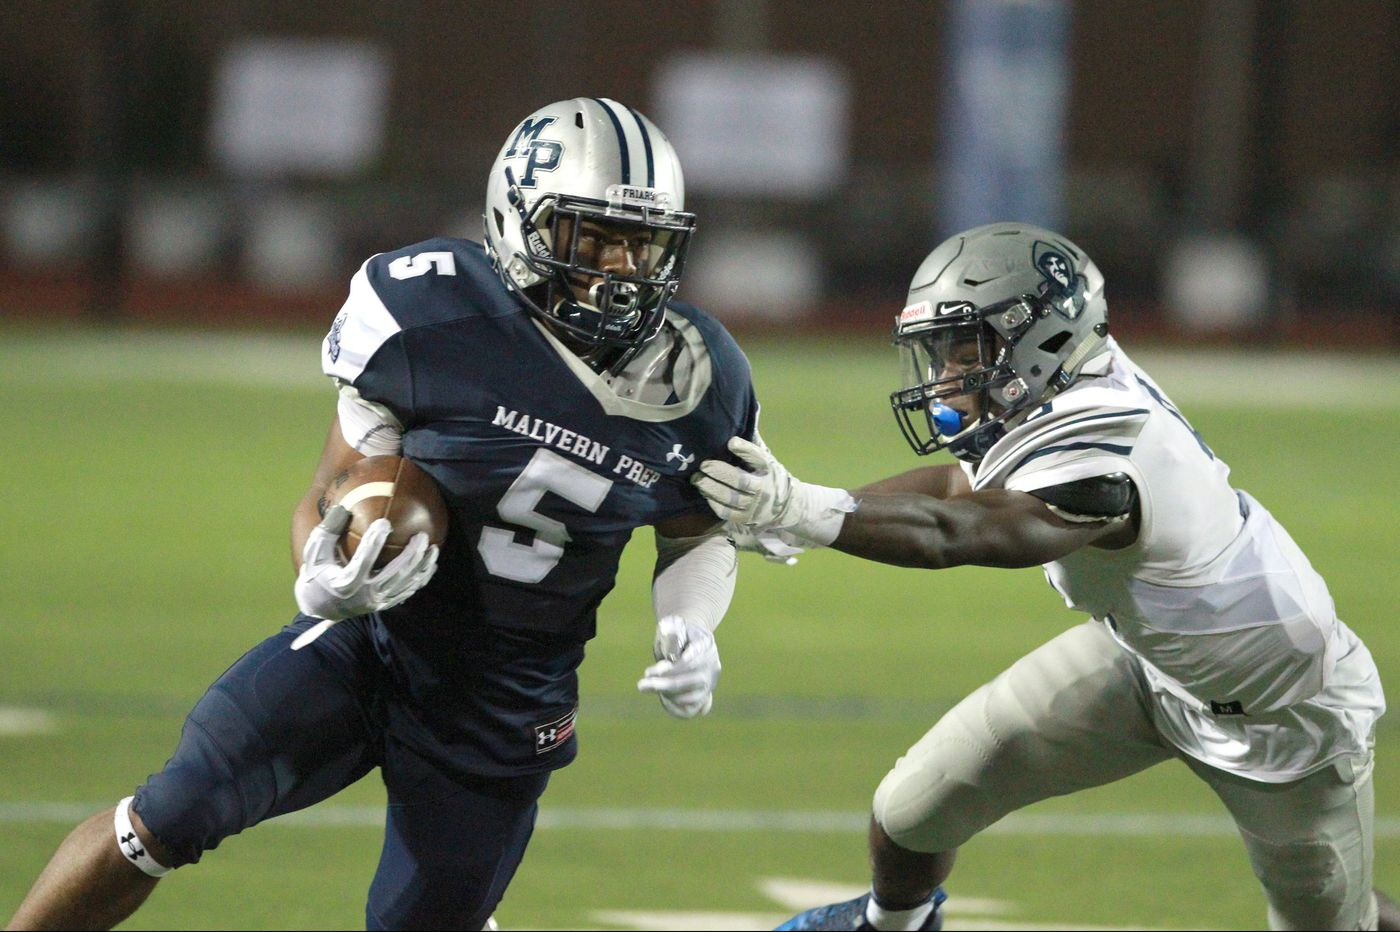 Malvern Prep favored to repeat as Inter-Ac League champ | Training camp preview